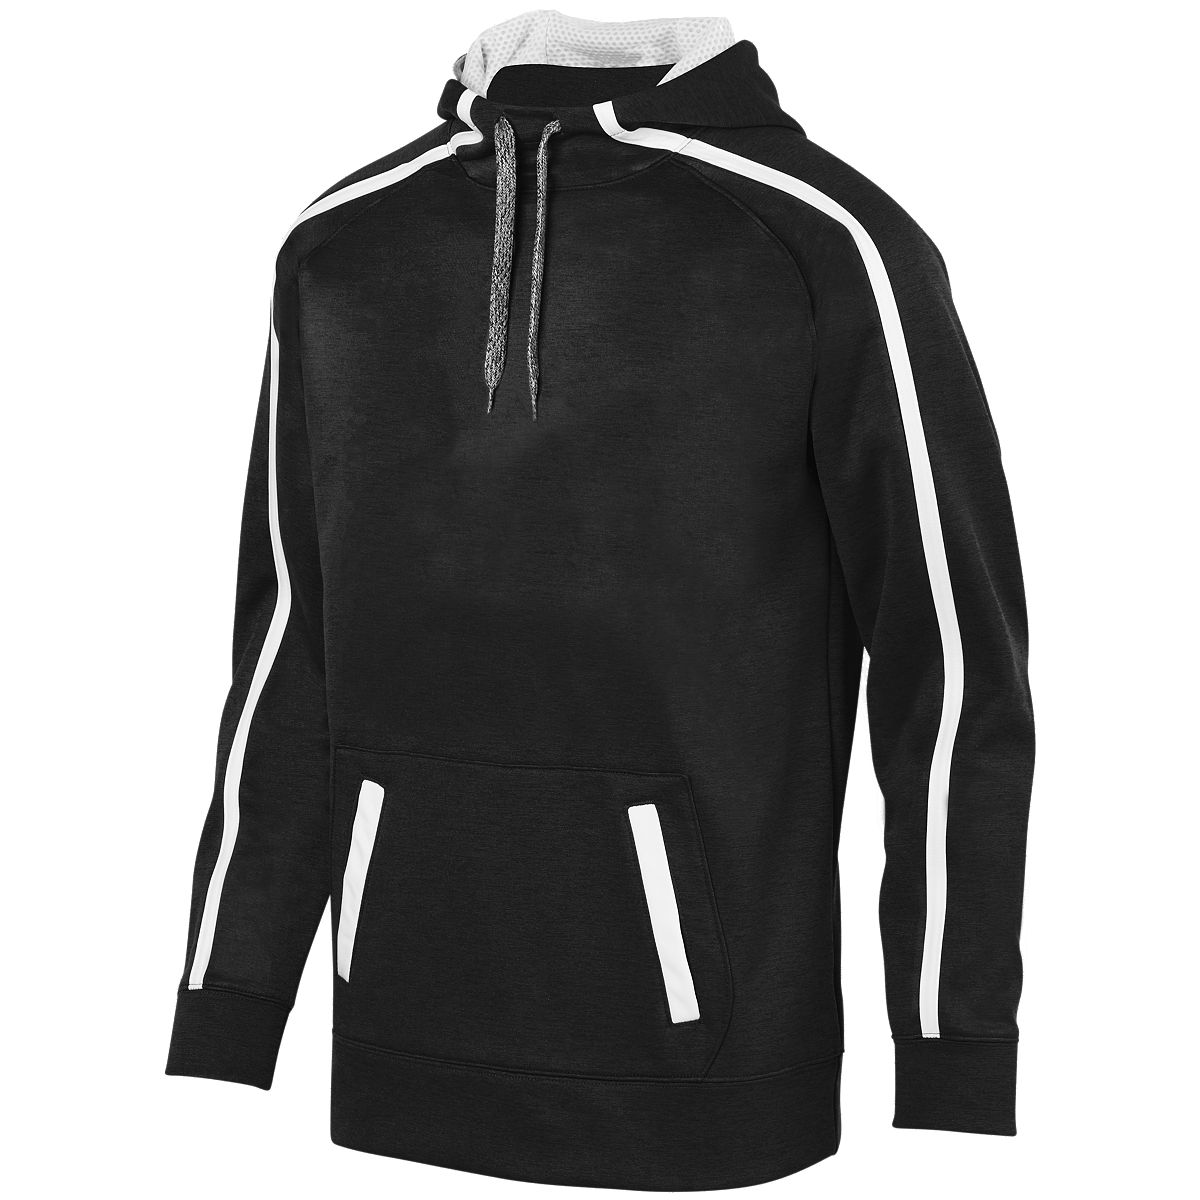 Augusta Stoked Tonal Heather Hoody Blk/Whi S - image 1 of 1